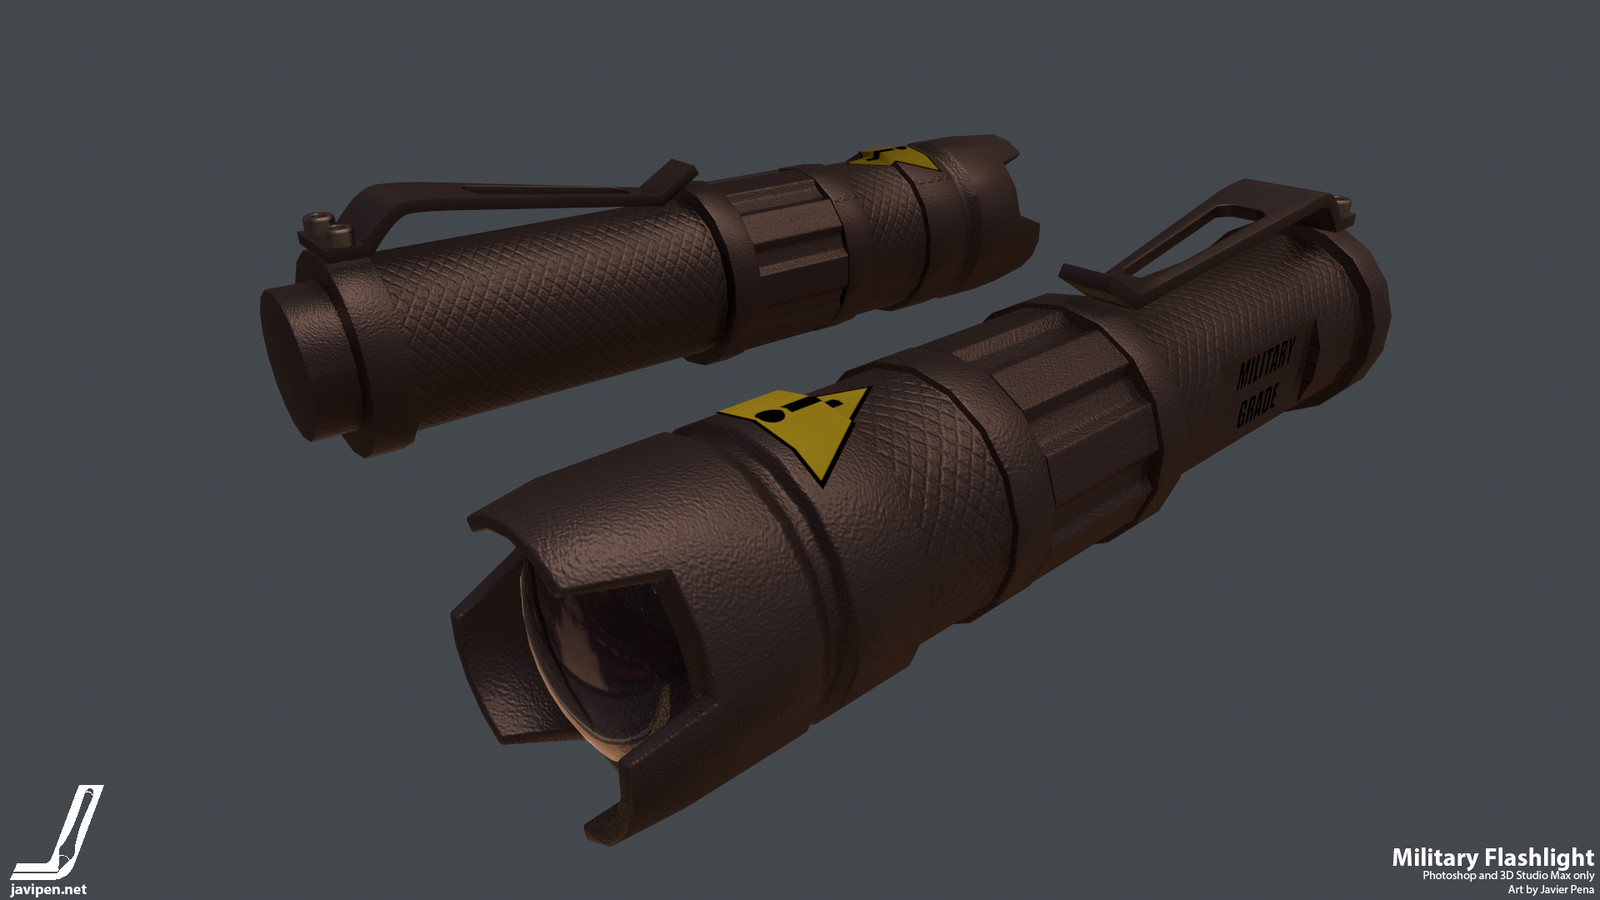 Military Flashlight